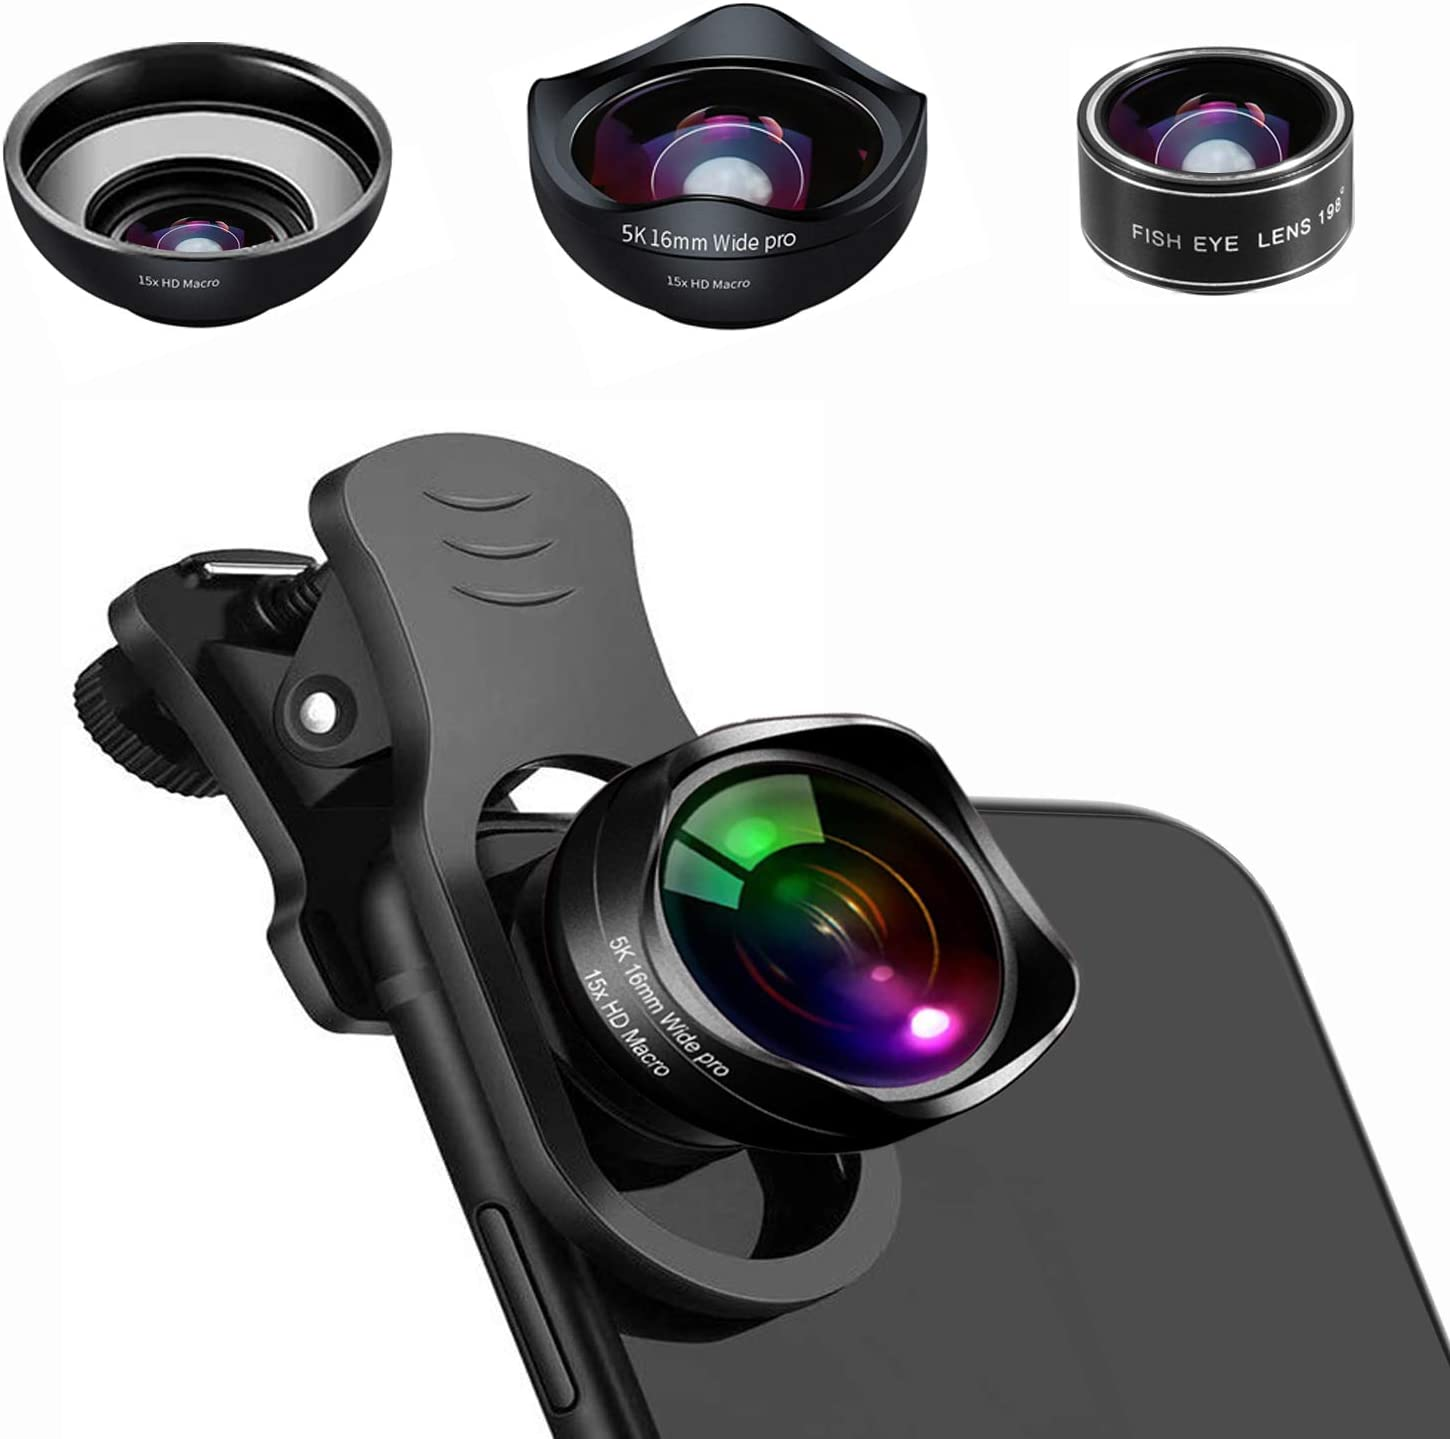 Universal Phone Camera Lens 0.45X Wide Angle Lens for iPhone XR XS X//11//8//7Plus,Samsung,BlackBerry,Android Smartphone 5K HD 3 in 1 Clip On Phone Lens Kit with 198/° Fisheye Lens 15x Macro Lens